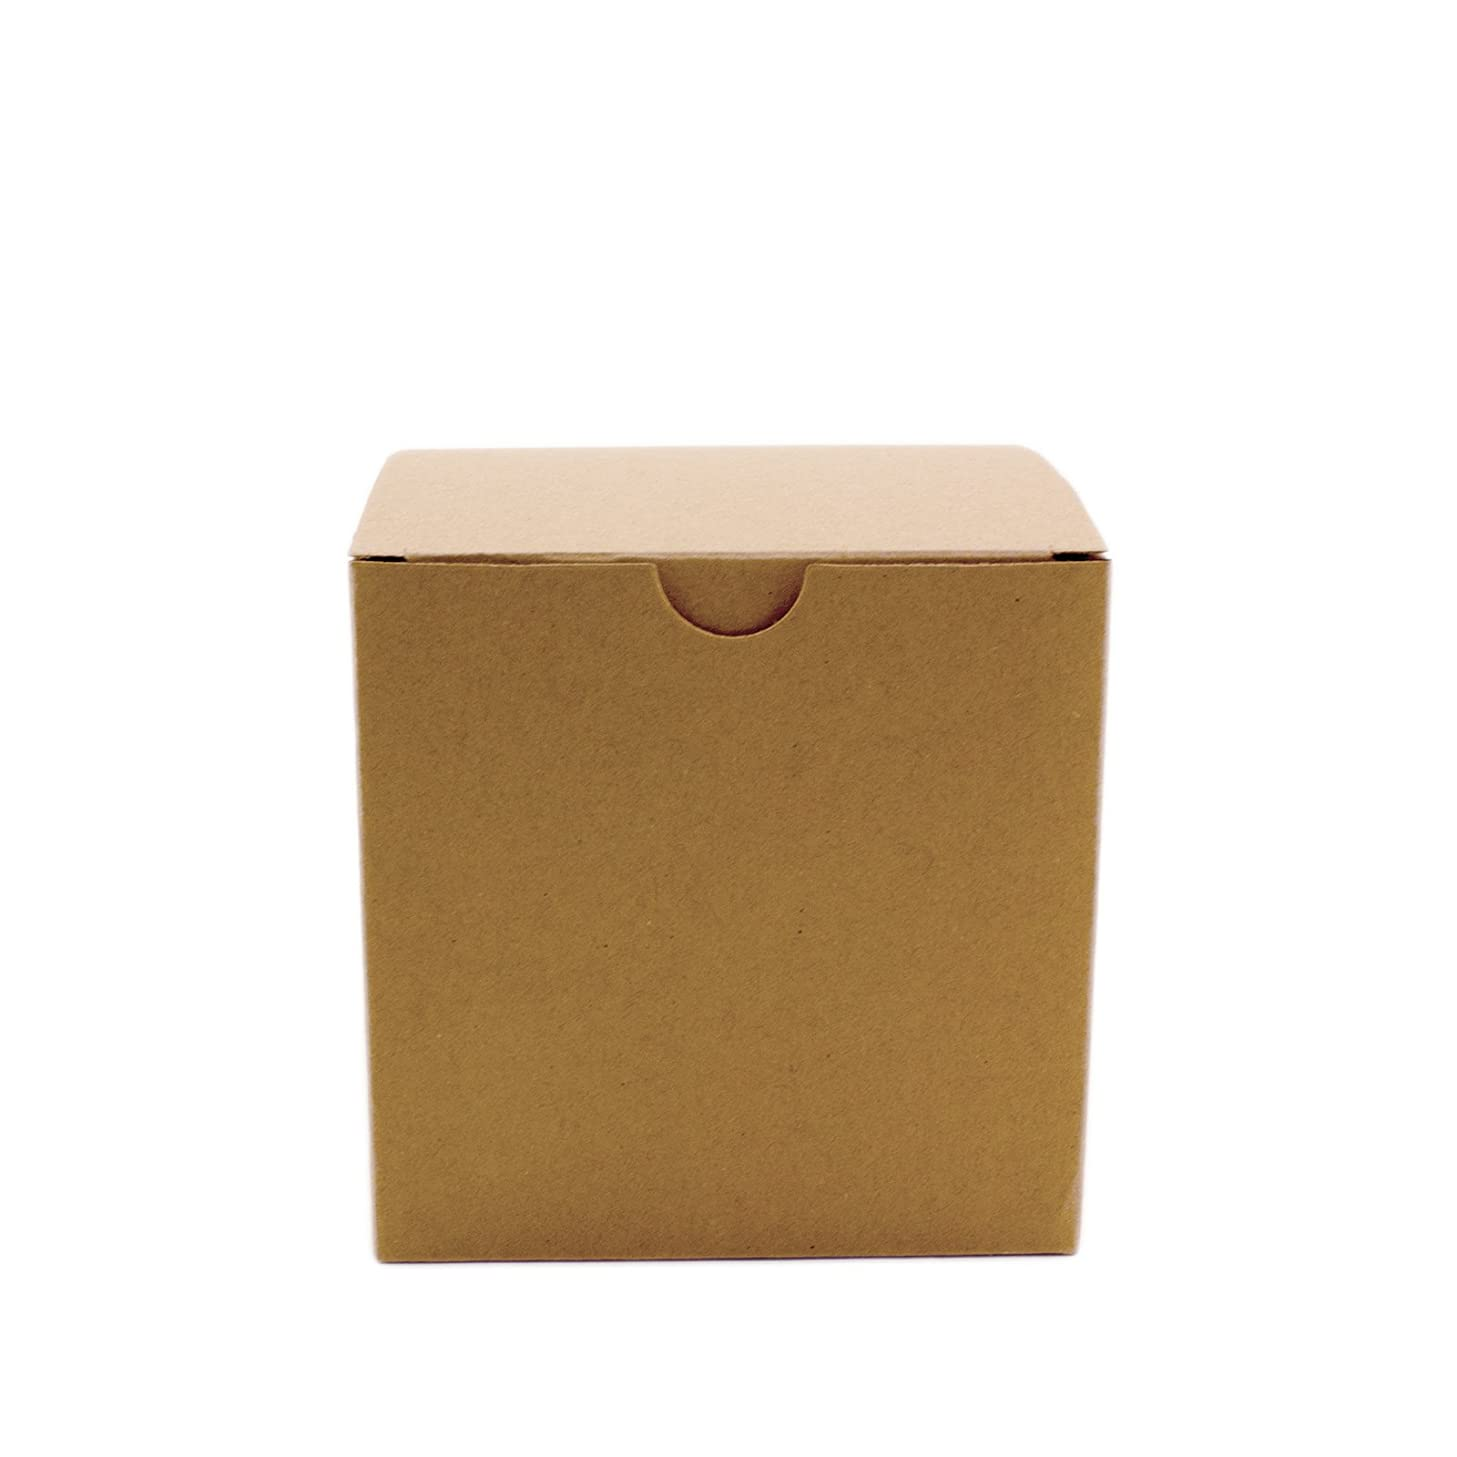 Adorox 50 Pack 4 x 4 x 4 Kraft Boxes Cardboard Gift Box with Lids for Wedding Birthday Holiday Baby Shower Favor (Brown, 4 X 4 X 4)